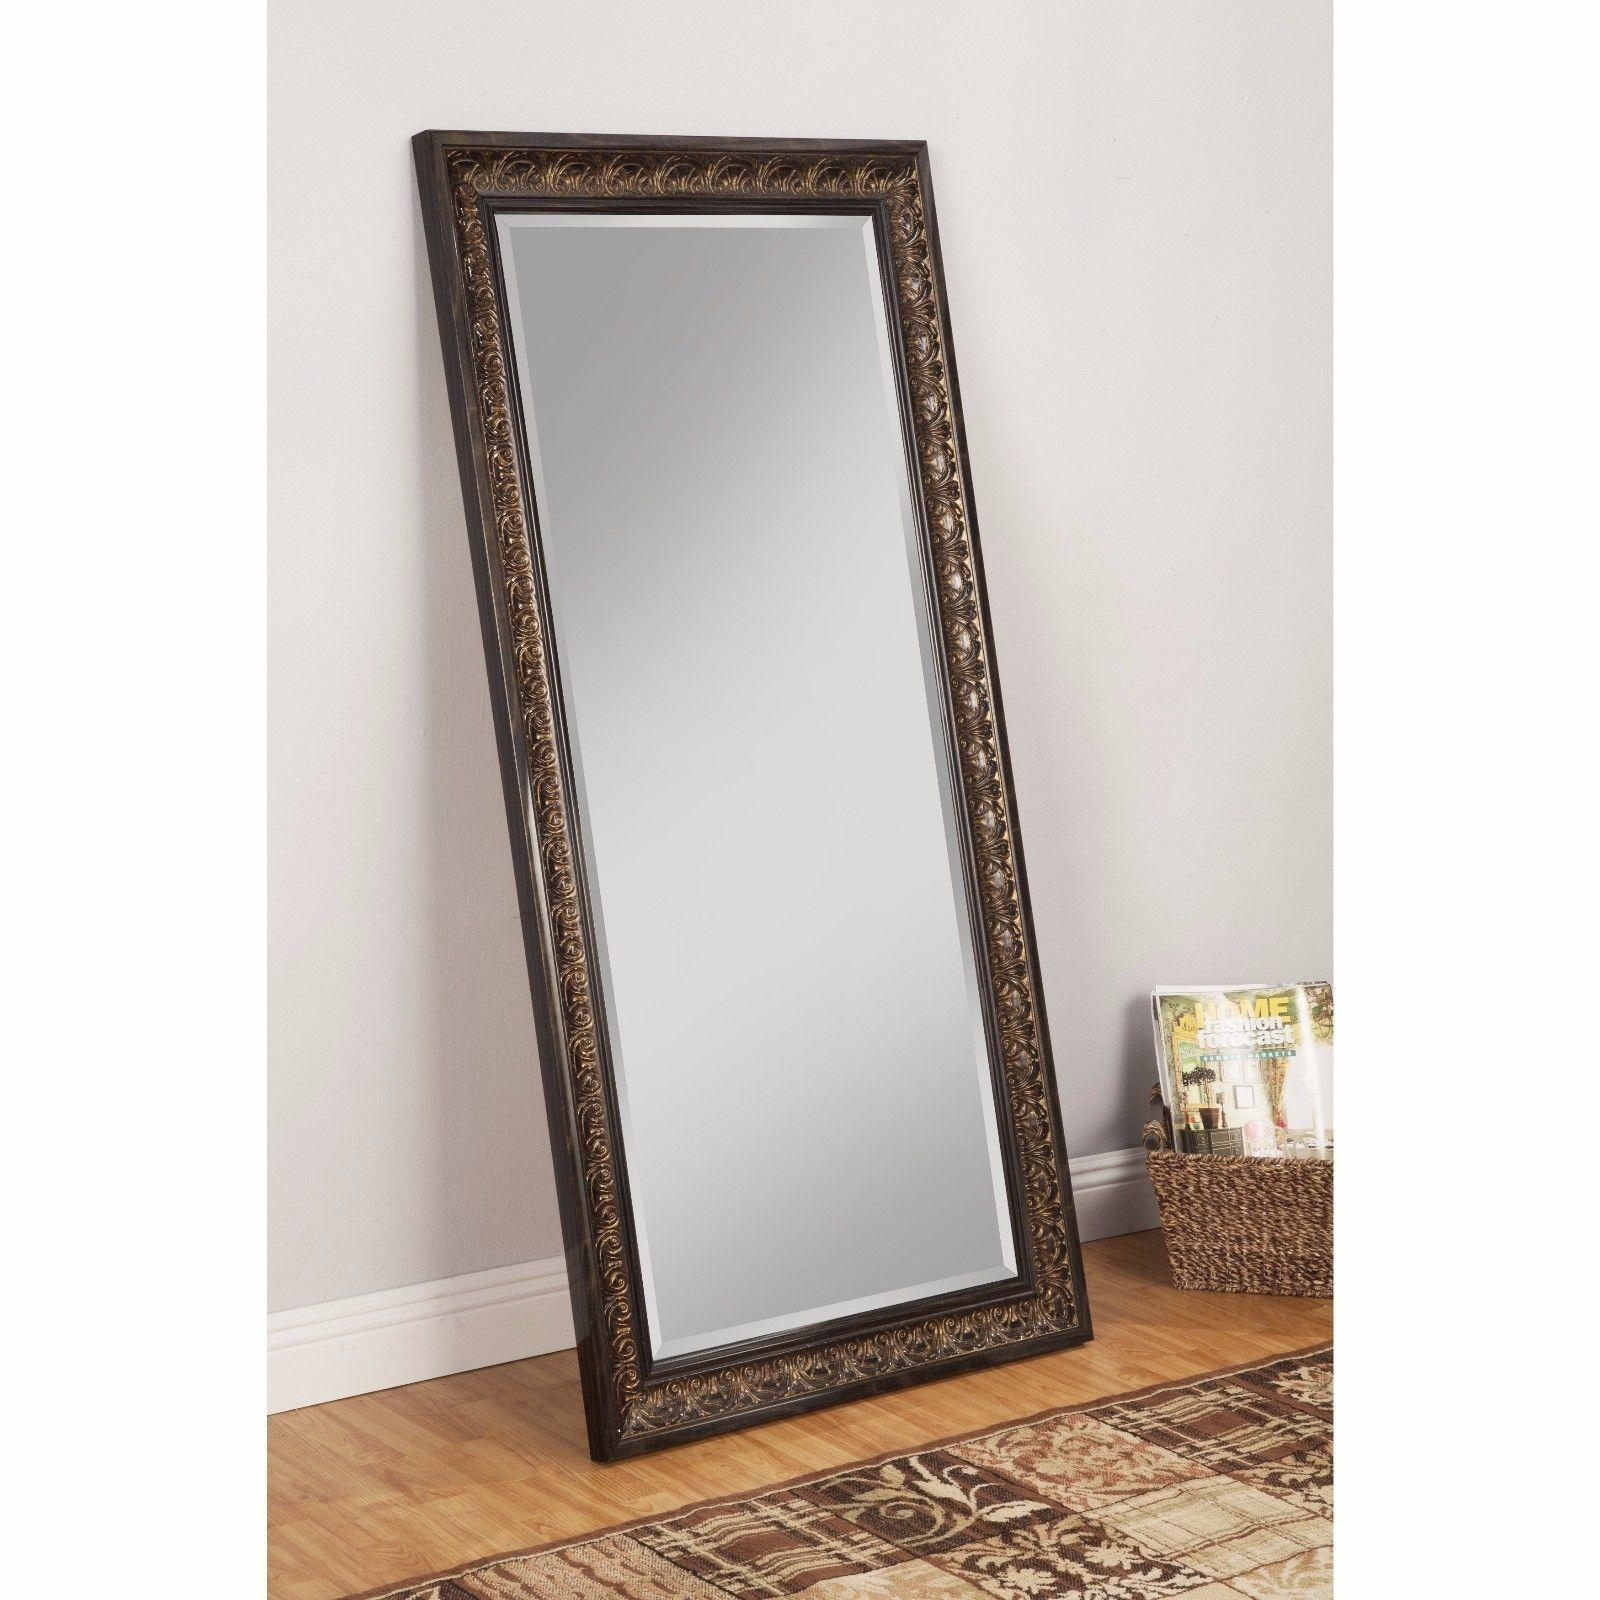 Free Standing Mirror Cheval Floor Full Length Leaning Big Long Regarding Long Dressing Mirror (Image 12 of 20)